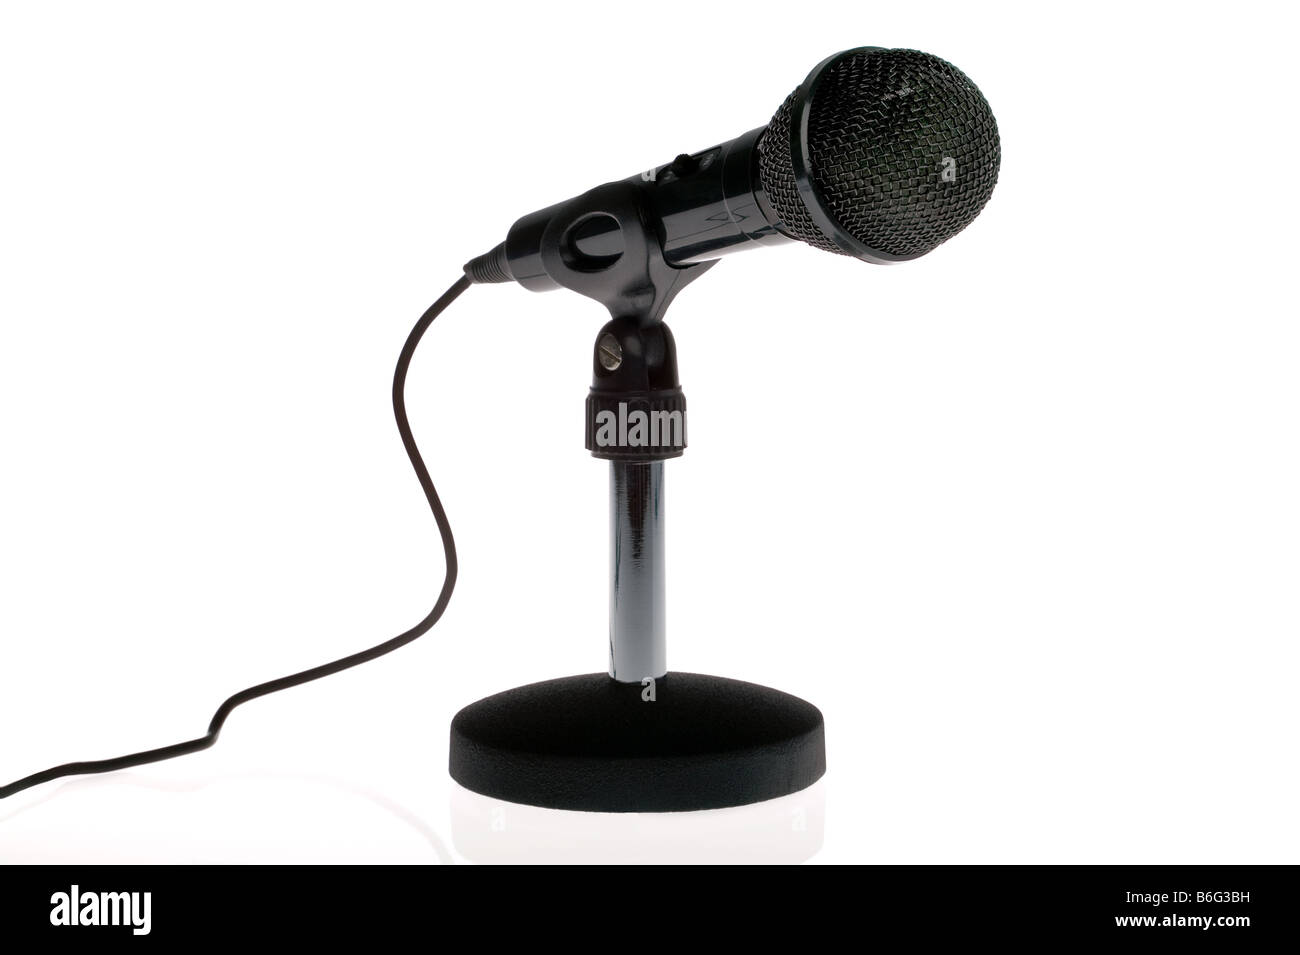 Black microphone with lead on a stand isolated on a white background - Stock Image